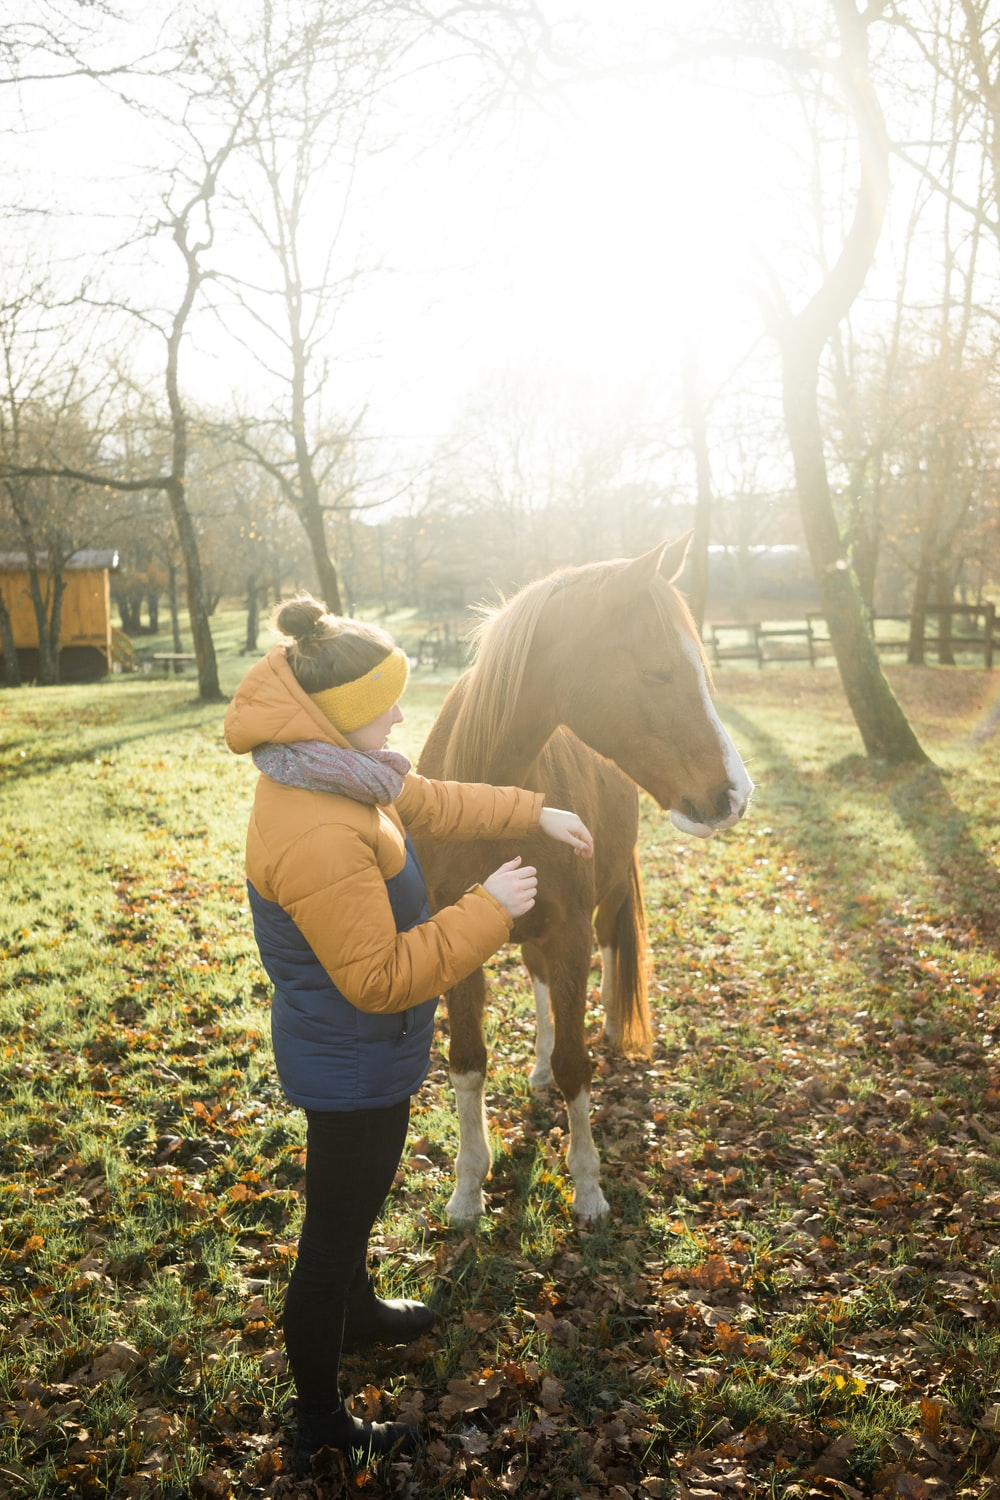 person standing beside horse near bare trees during day